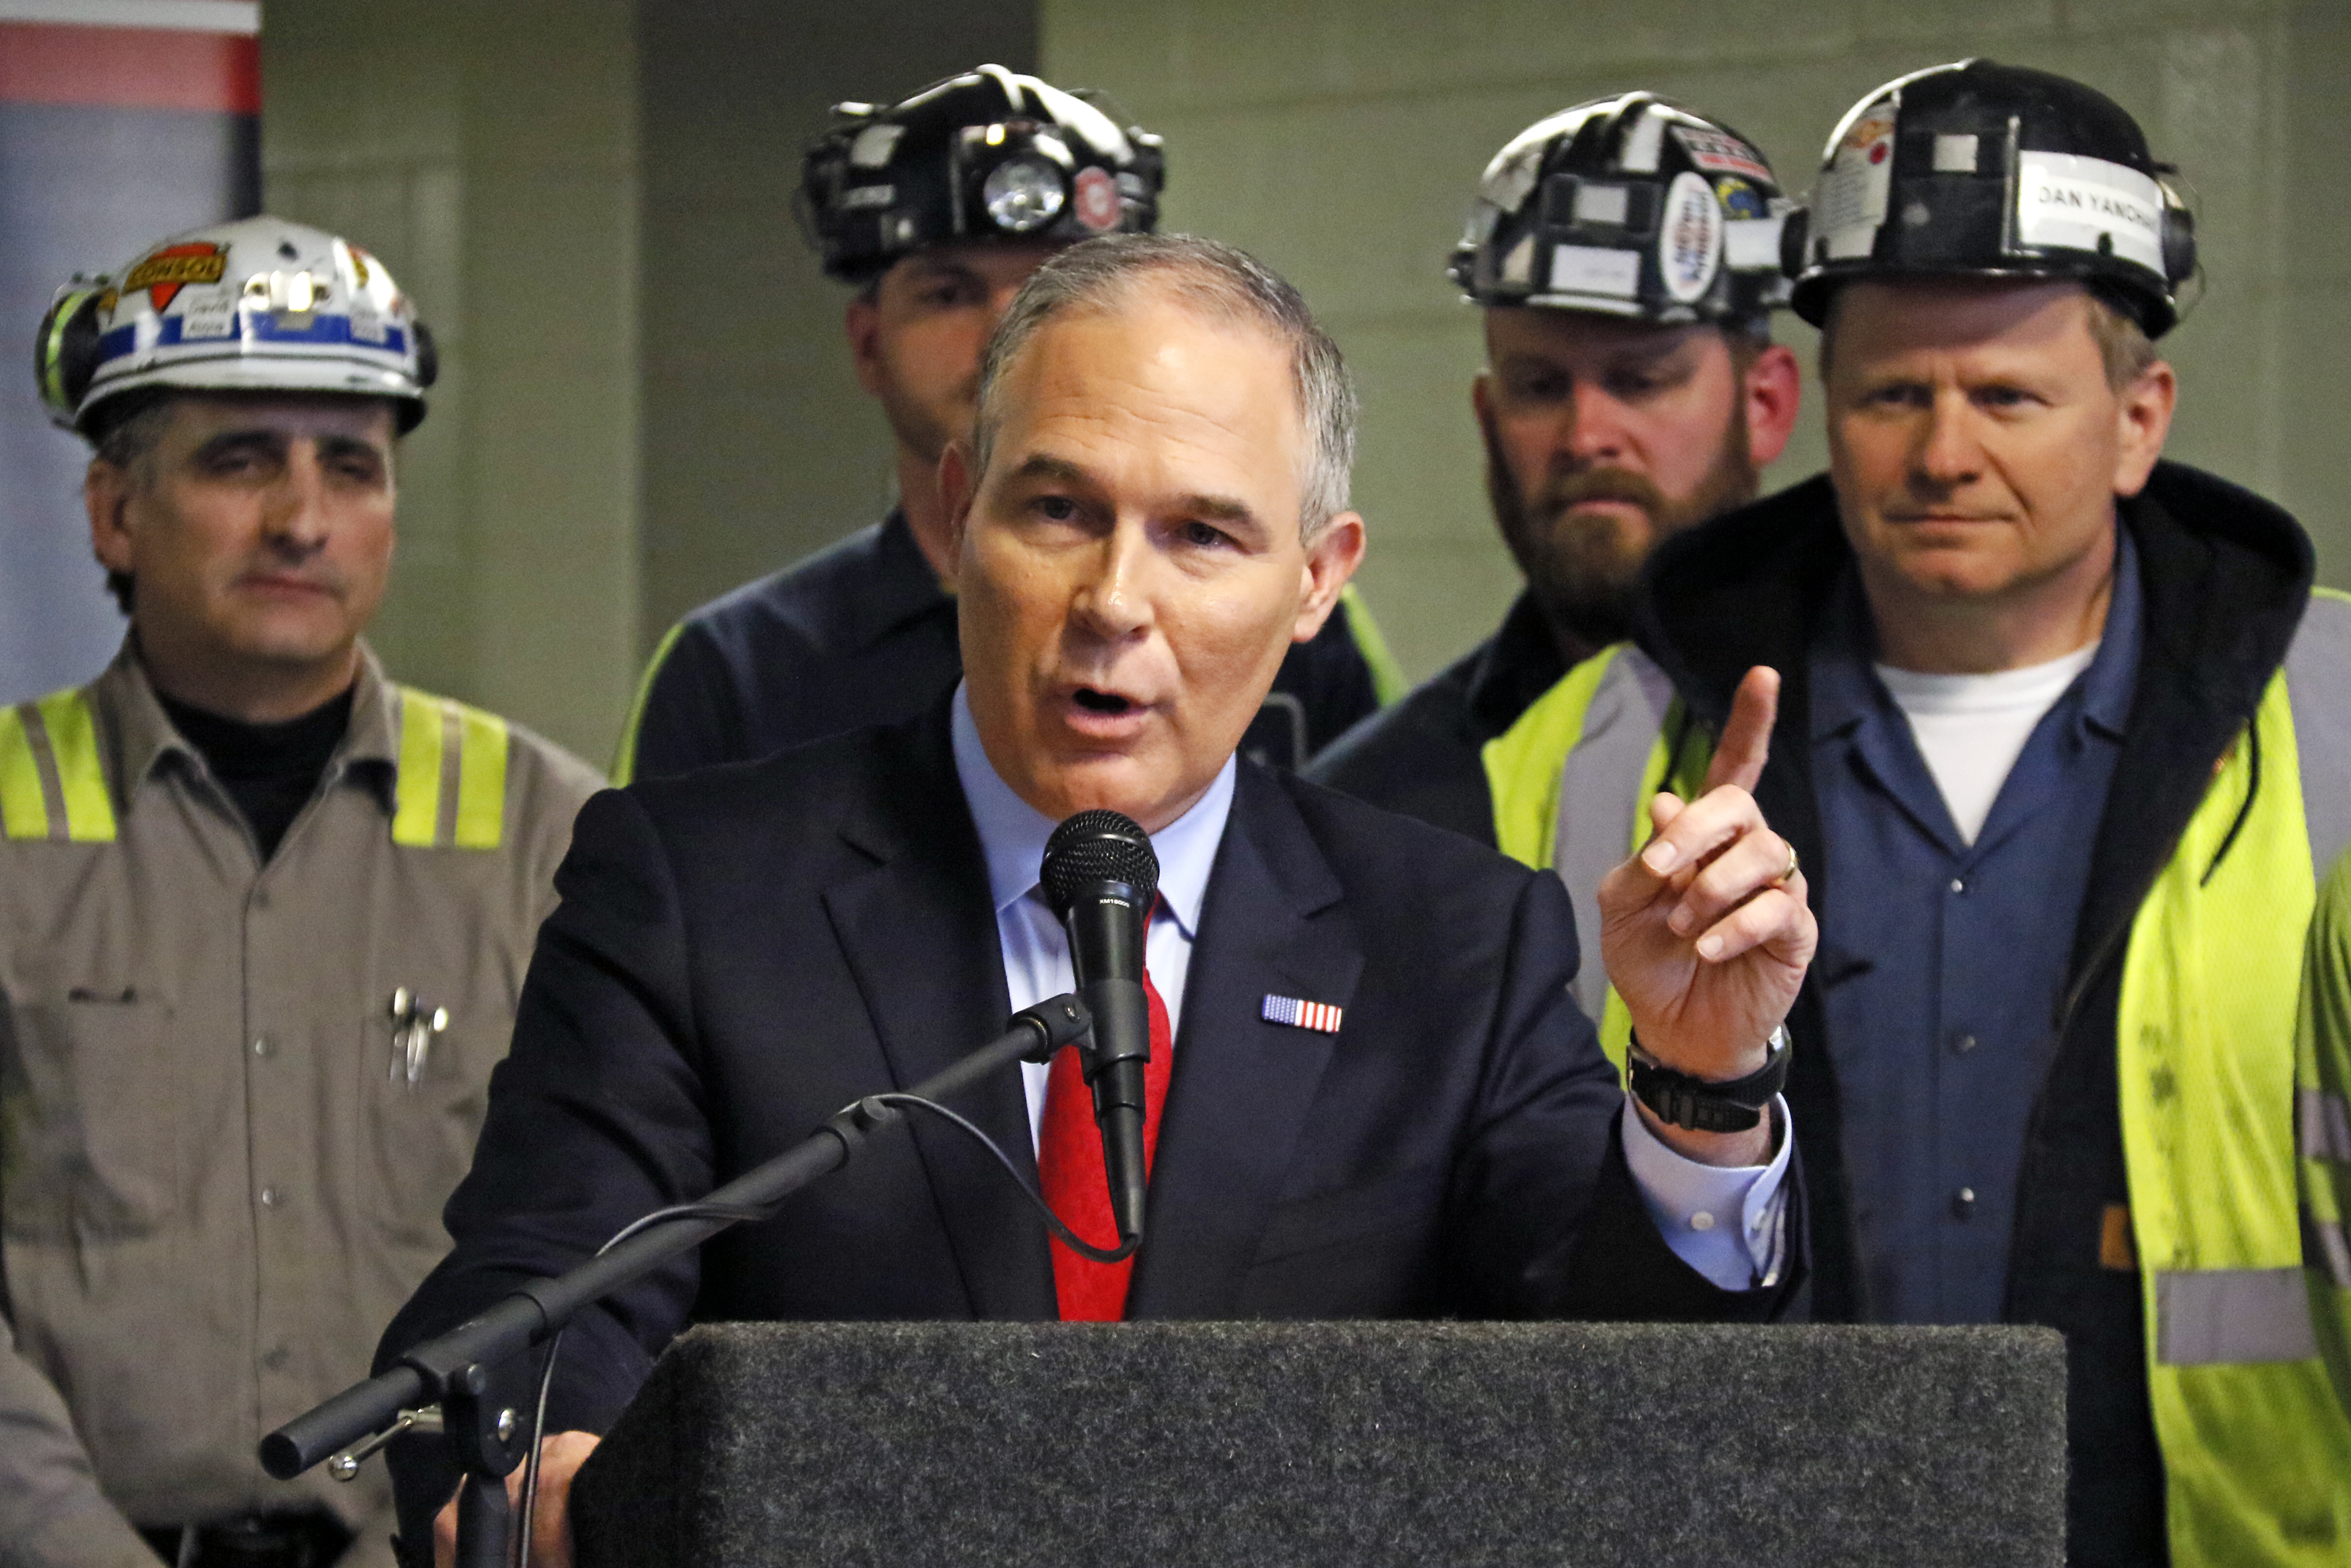 U.S. Environmental Protection Agency Administrator Scott Pruitt speaks to a group of miners during a visit to Consol Pennsylvania Coal Company´s Harvey Mine in Sycamore, Pa., Thursday, April 13, 2017. (AP Photo/Gene J. Puskar)